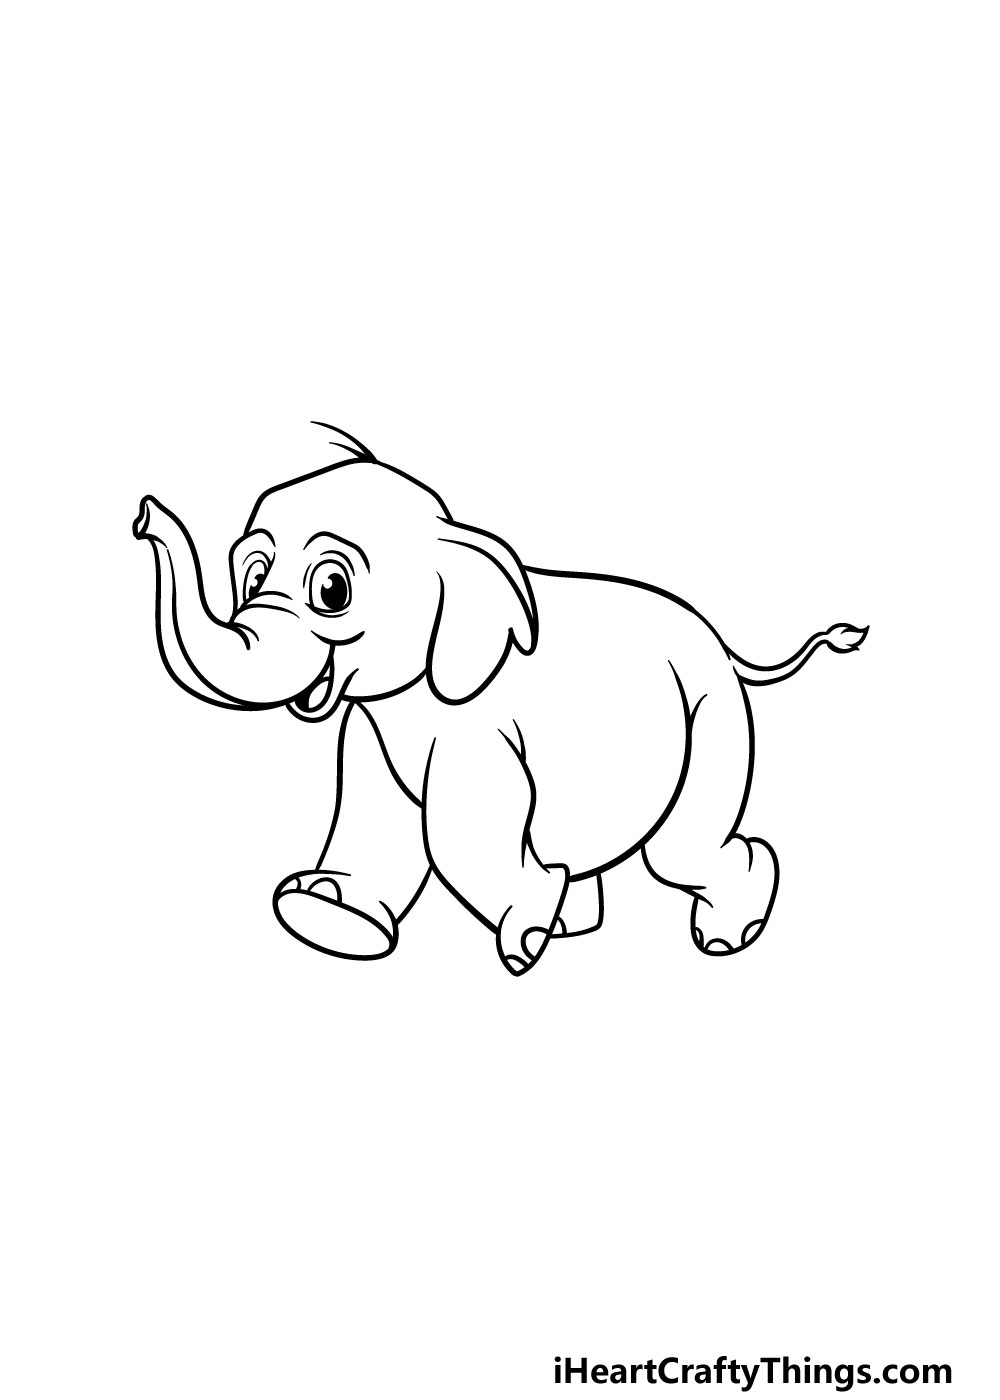 drawing a baby elephant step 5